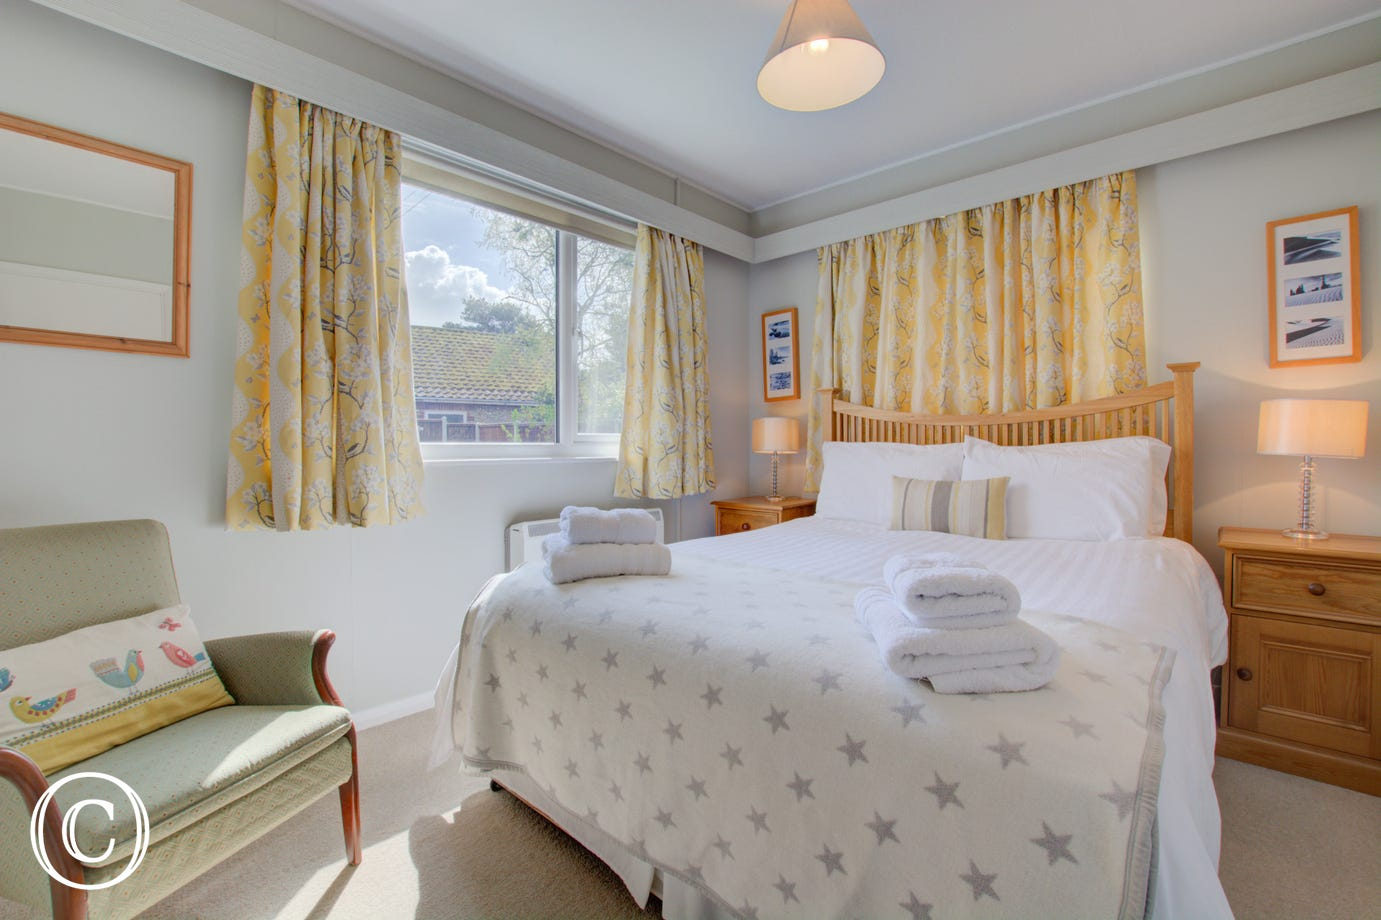 A light & airy room with a king-size bed, bedside cabinets & lighting